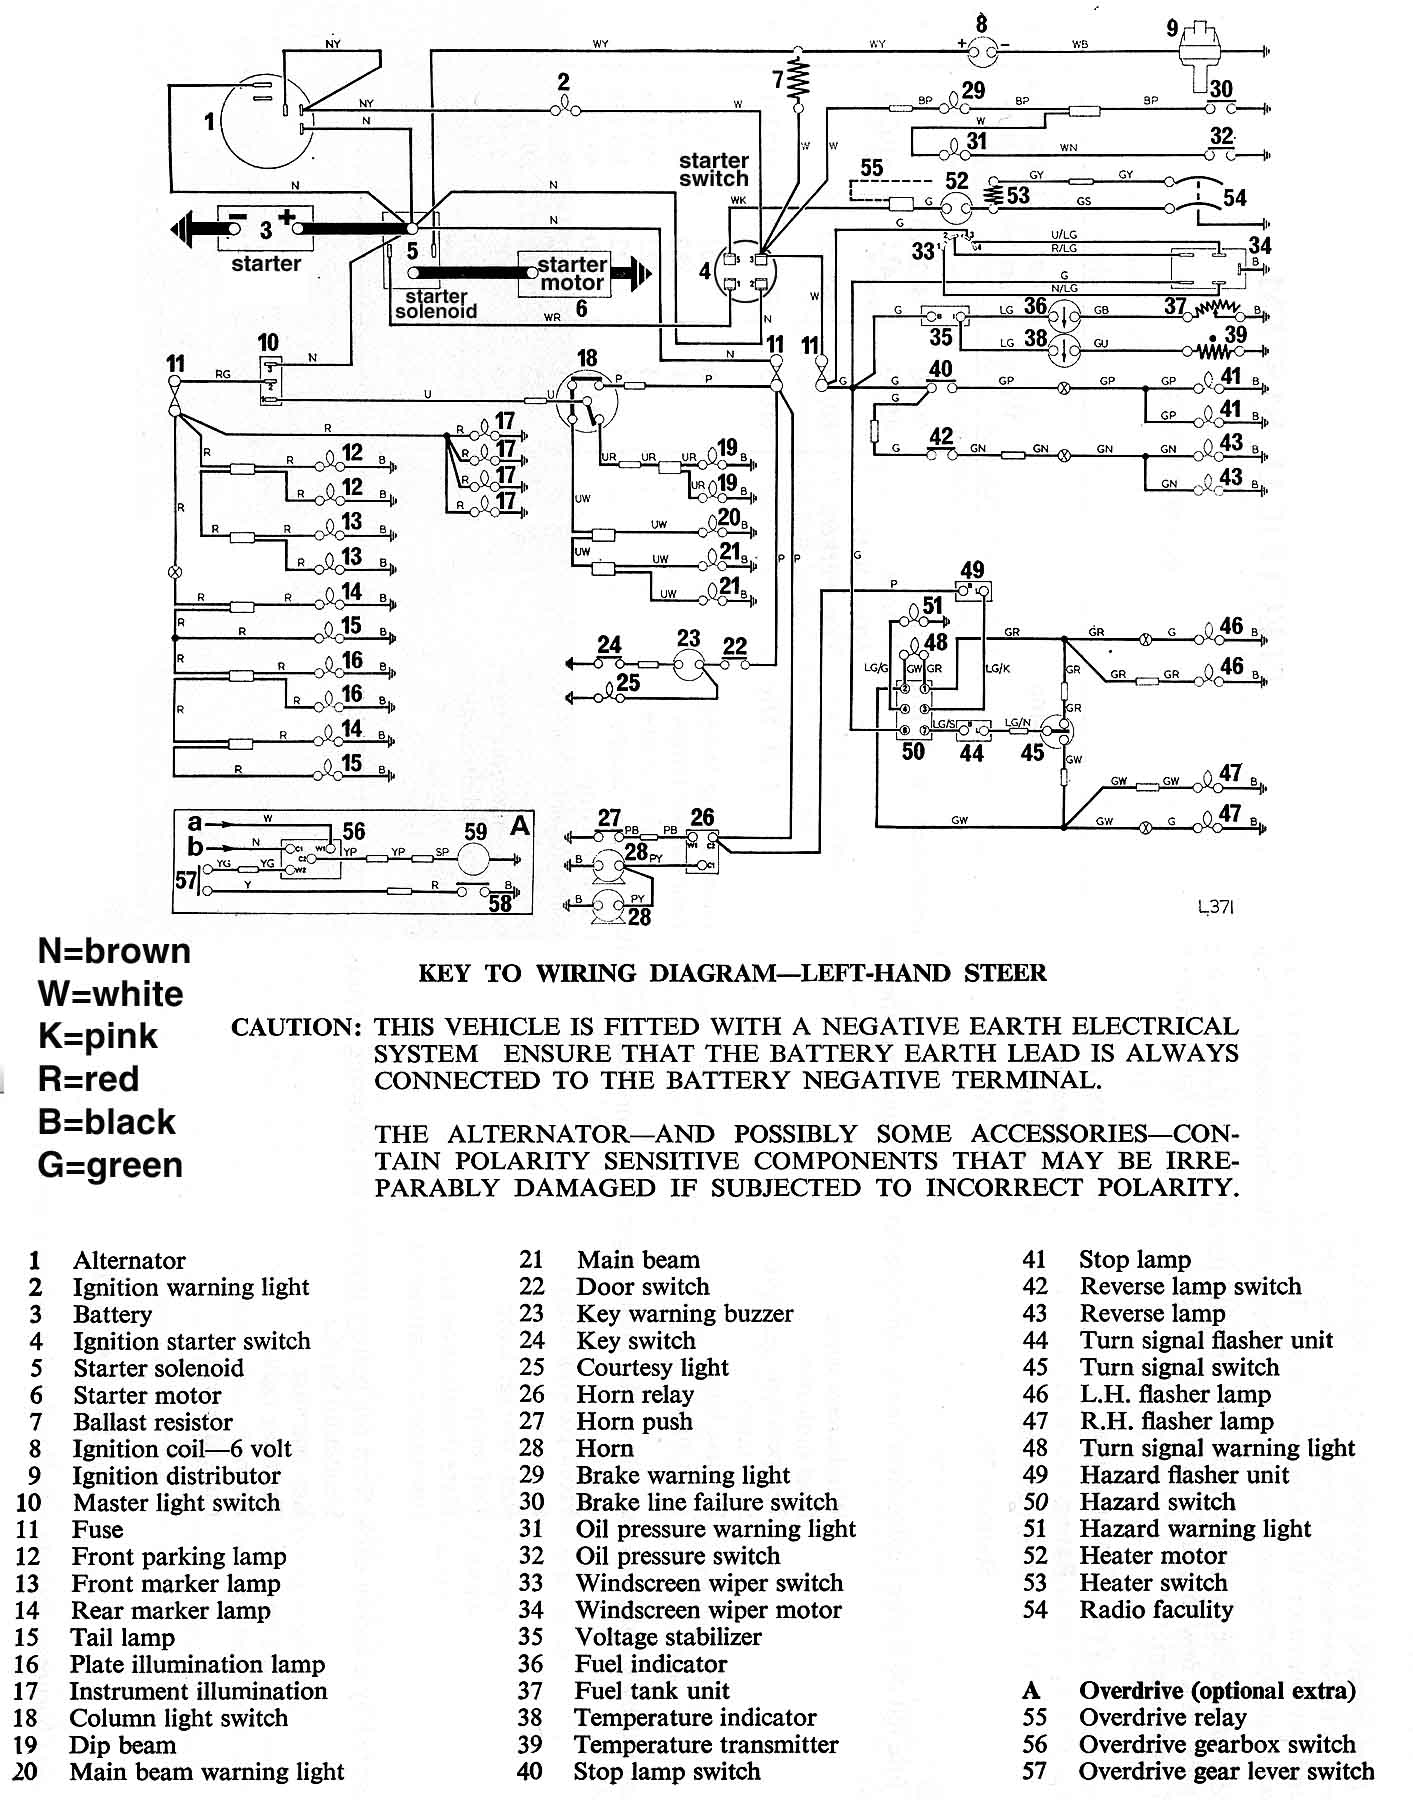 MKIVwire wiring schematics and diagrams triumph spitfire, gt6, herald 1978 triumph spitfire wiring diagram at honlapkeszites.co